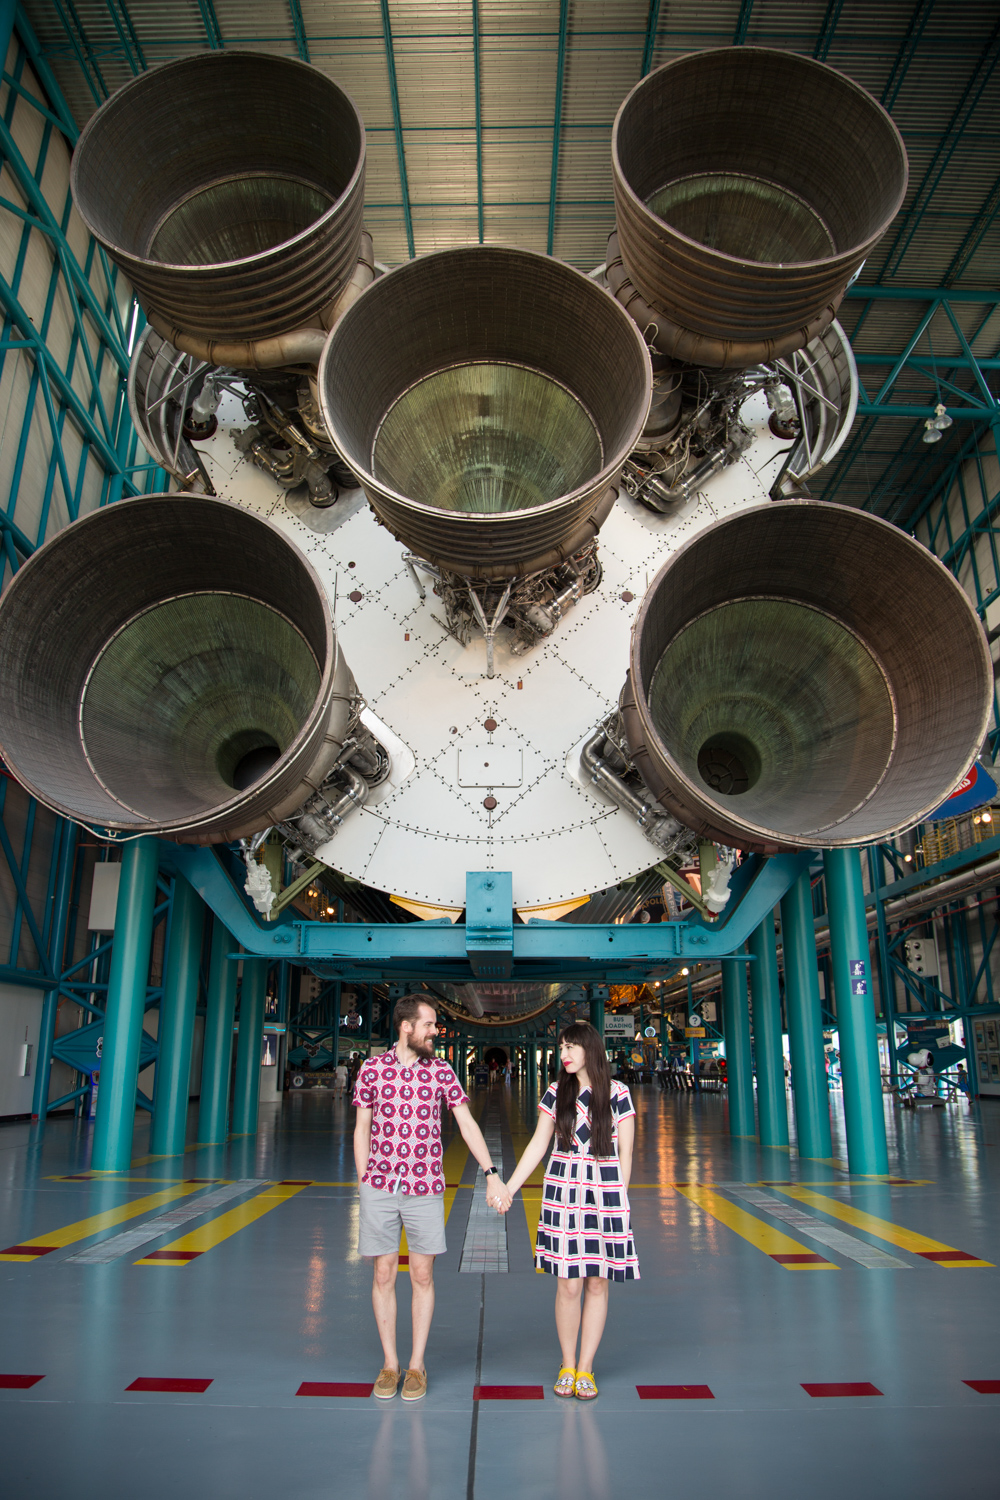 Kennedy Space Center Review- Things to do in Orlando